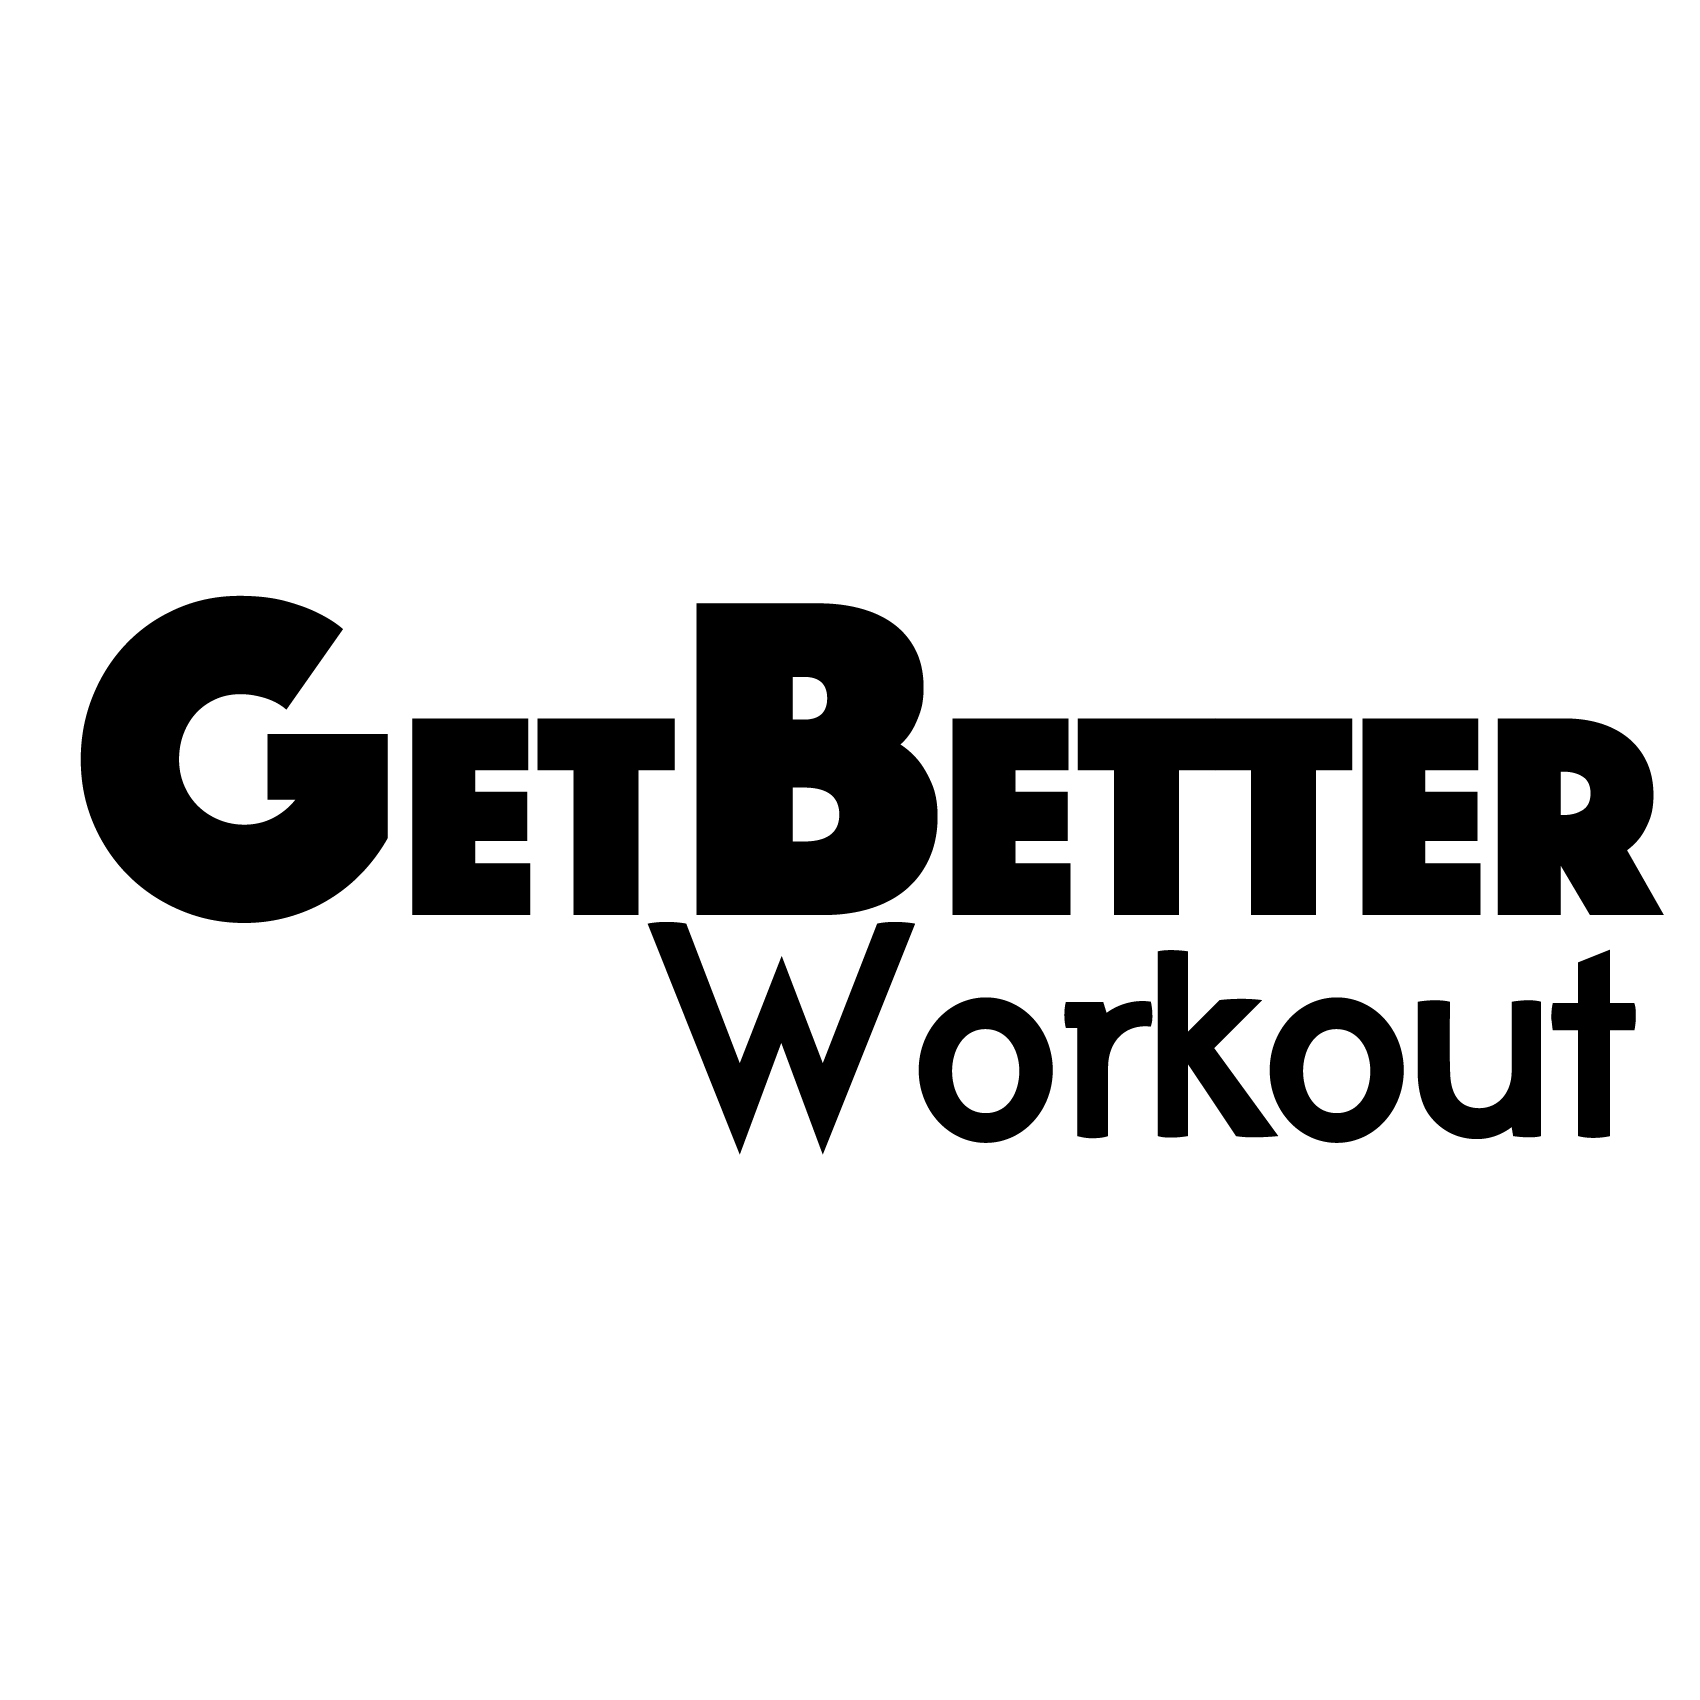 GetBetter Stickers messages sticker-1